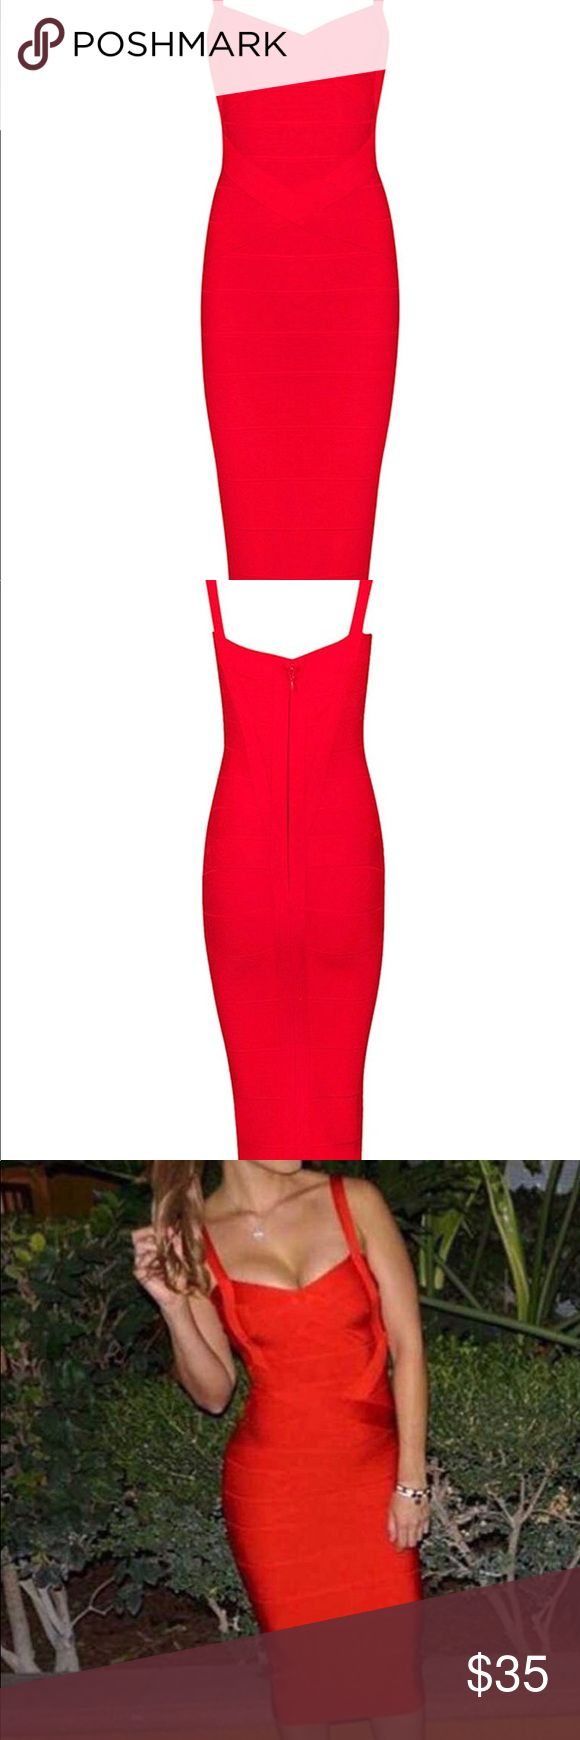 Herve Ledger inspired red bandage dress Herve Ledger inspired red bandage dress. Very flattering on, bright red color perfect for a holiday party, wedding, or date night. The midi length and hugging material makes it both sexy & classy. Size x small but would also fit a S. Fits like a glove.  NEVER WORN, new without tags in excellent condition!! Dresses Midi